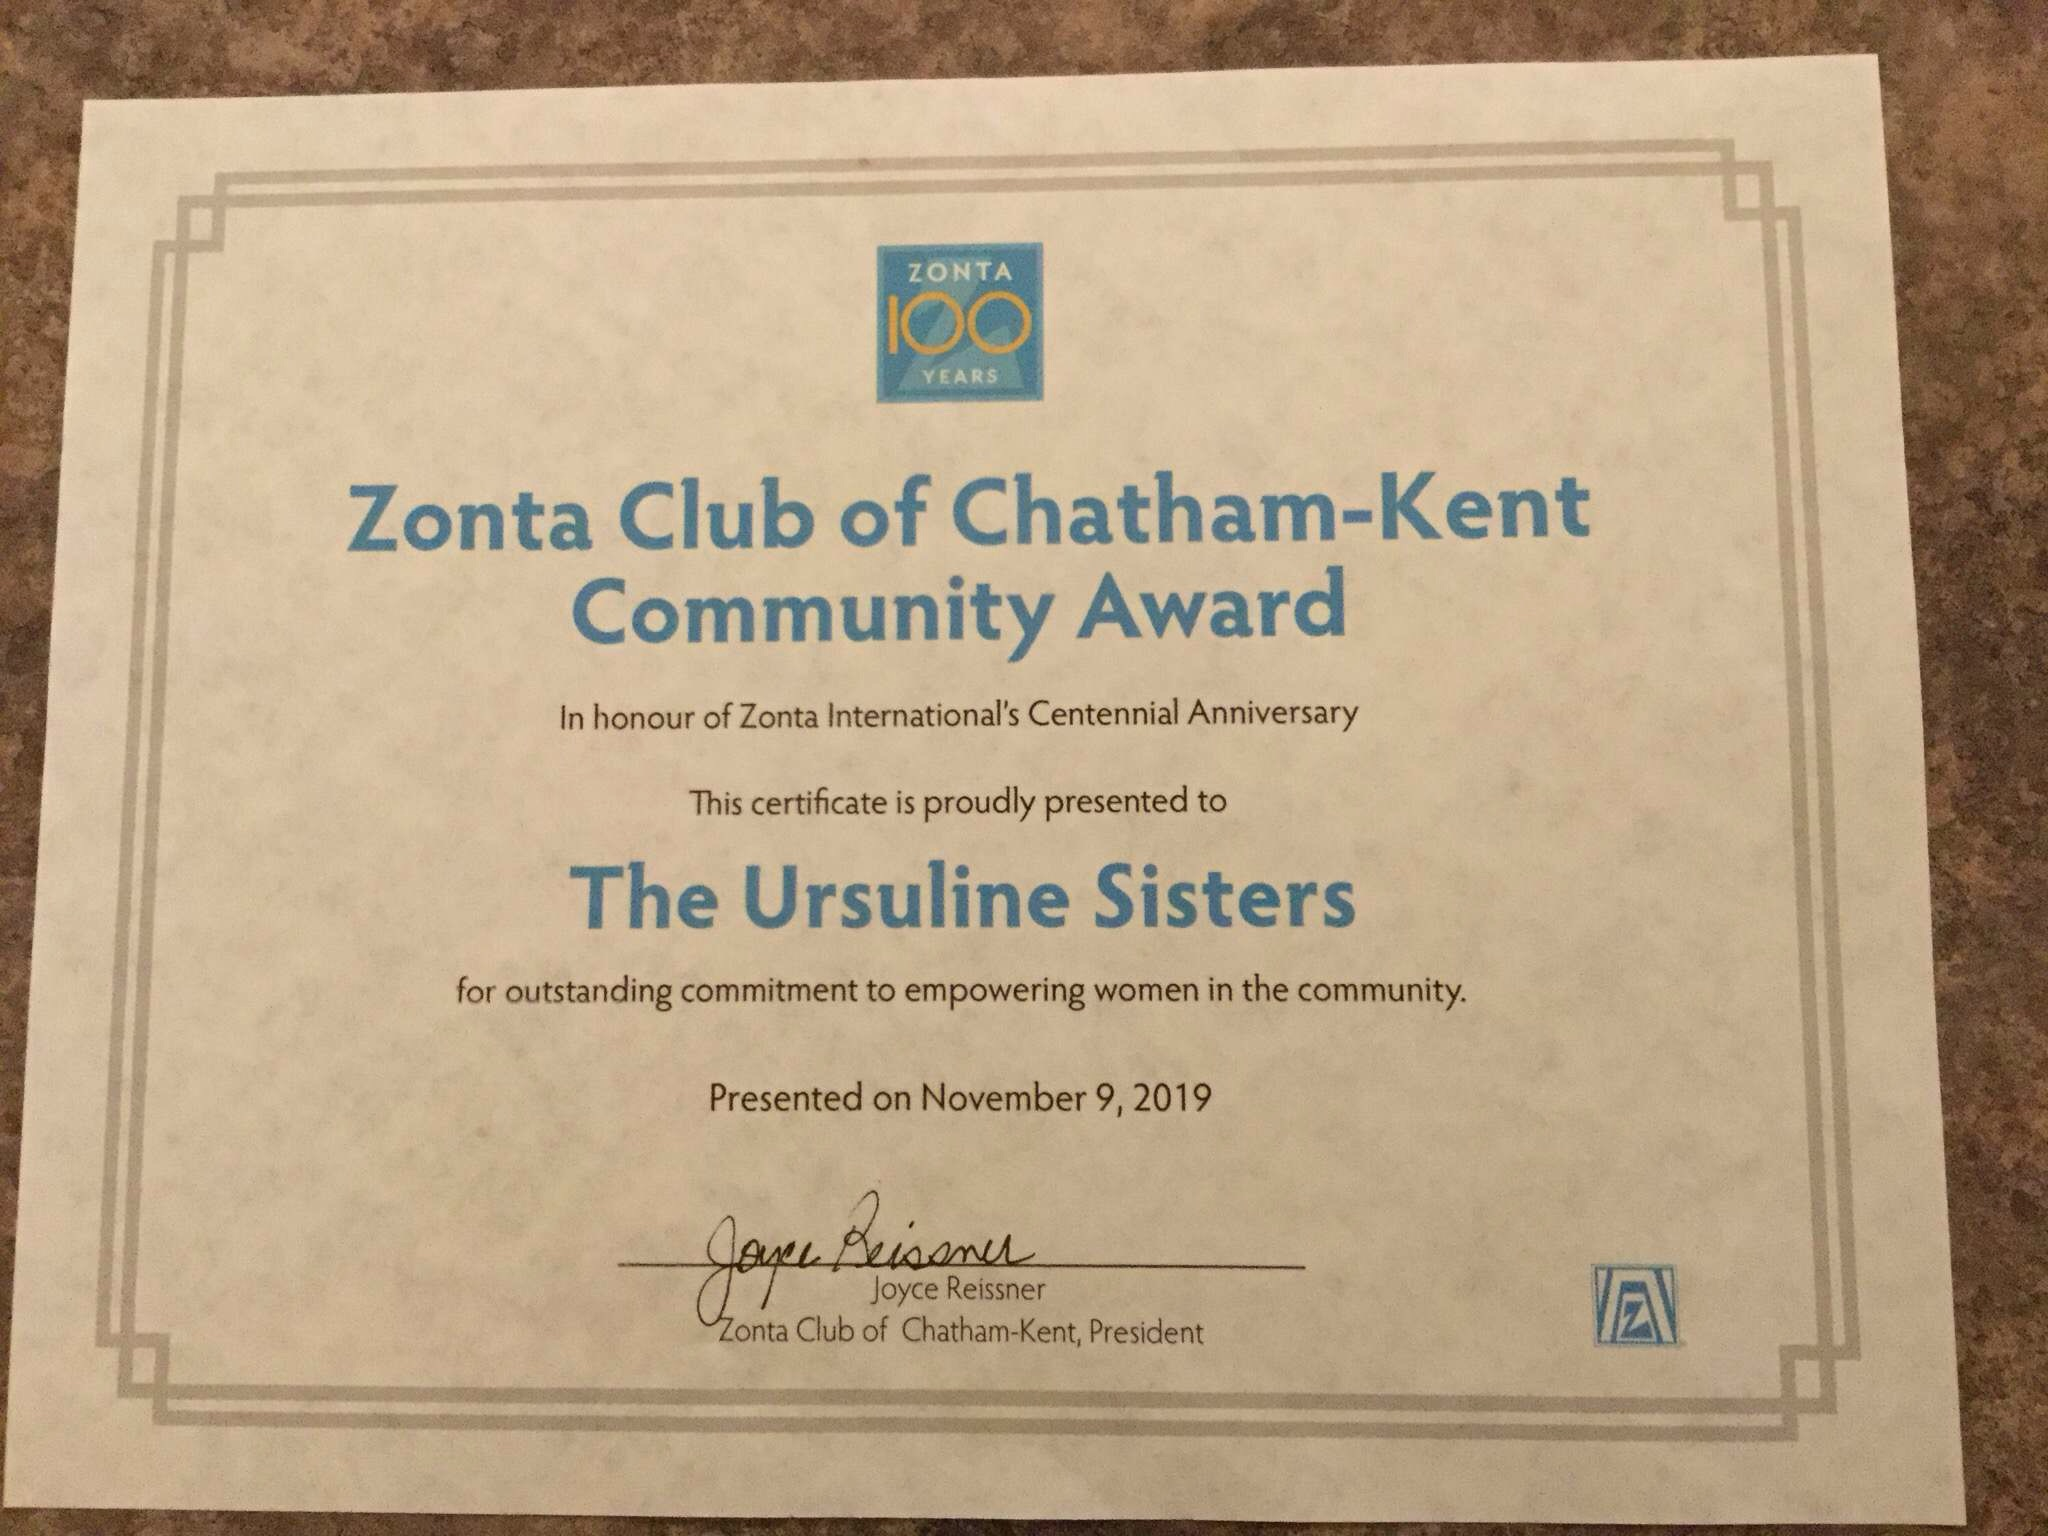 Zonta Club Women bestow the Ursuline Sisters of Chatham